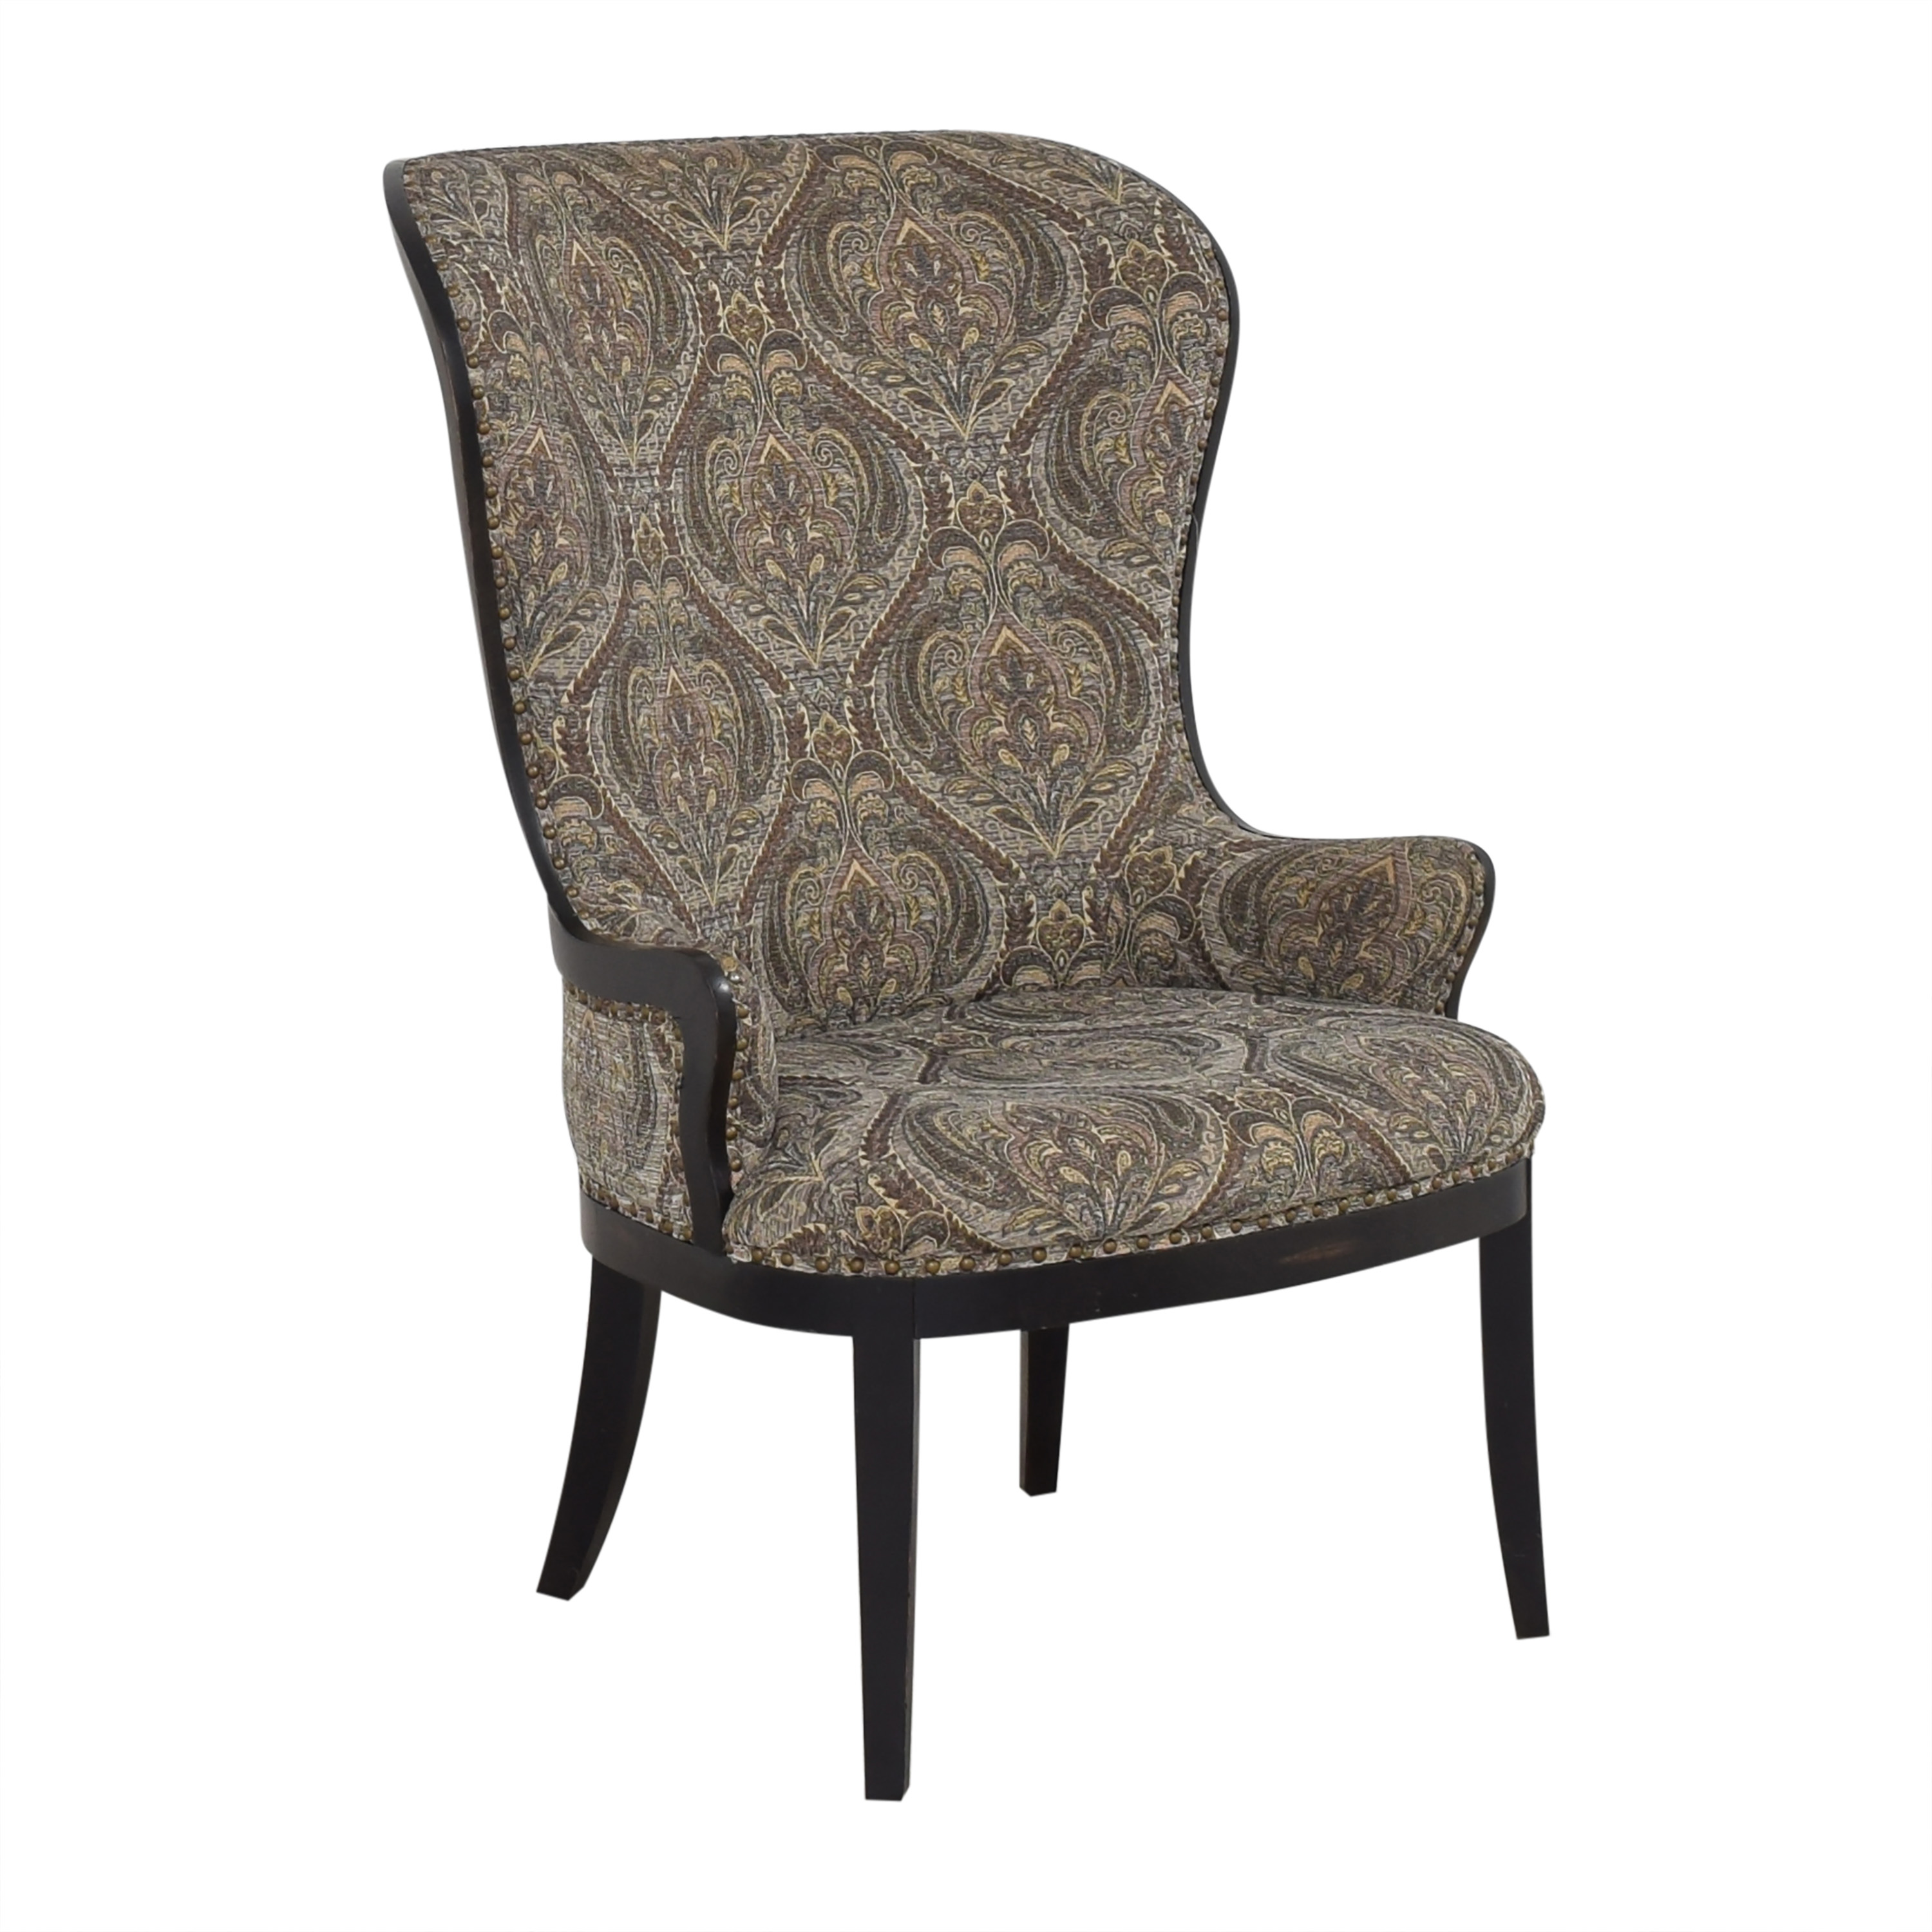 Arhaus Portsmouth Accent Chair / Accent Chairs